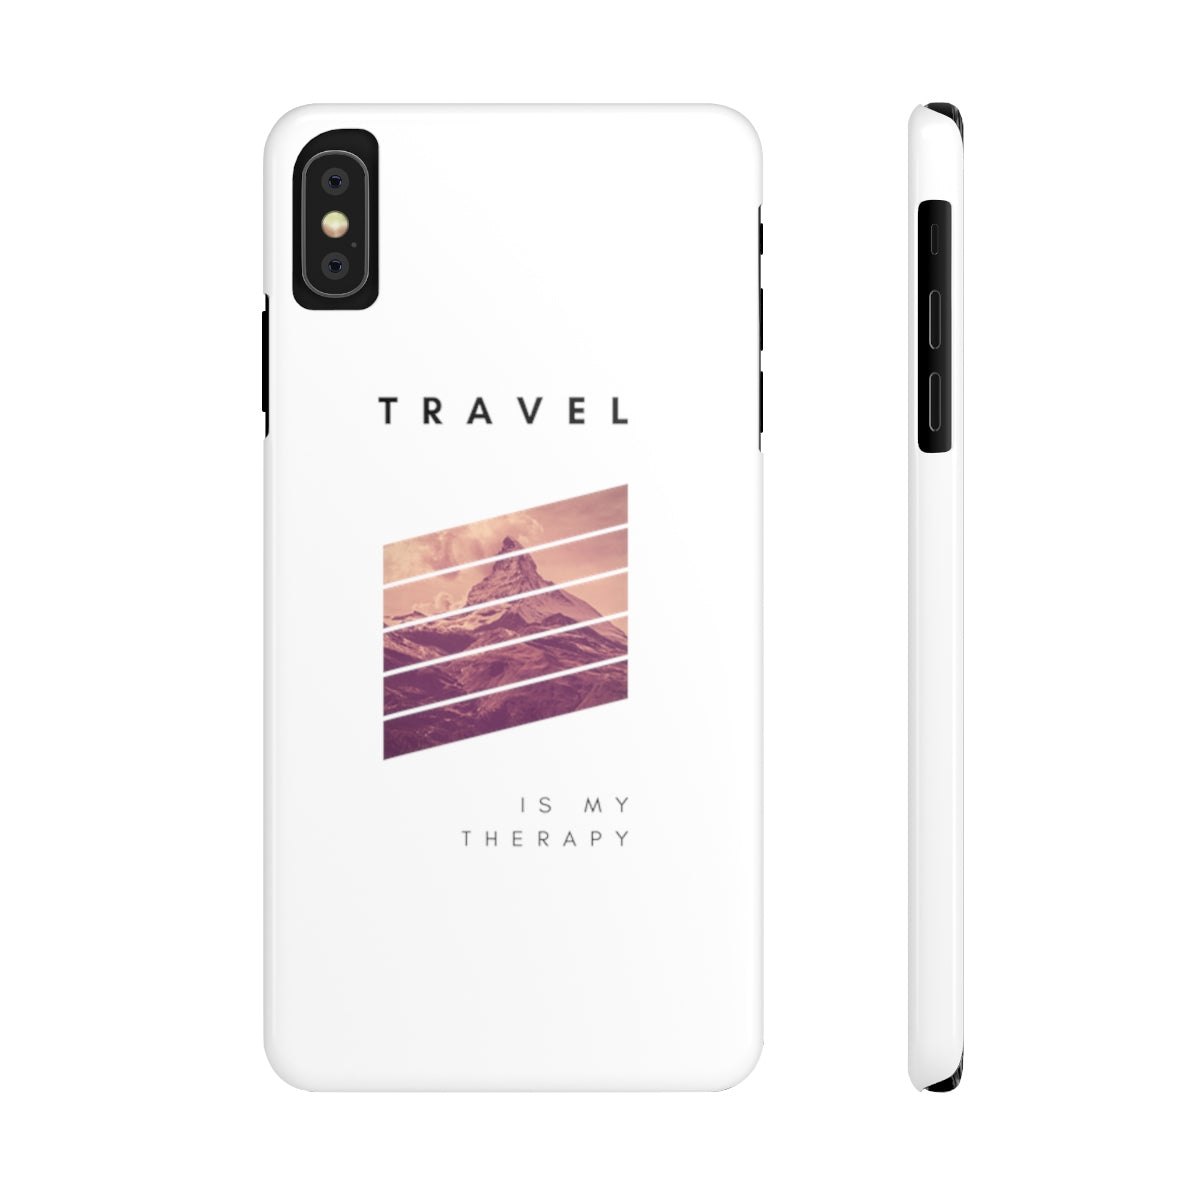 Case Mate Slim Phone Cases - The Nomad Style